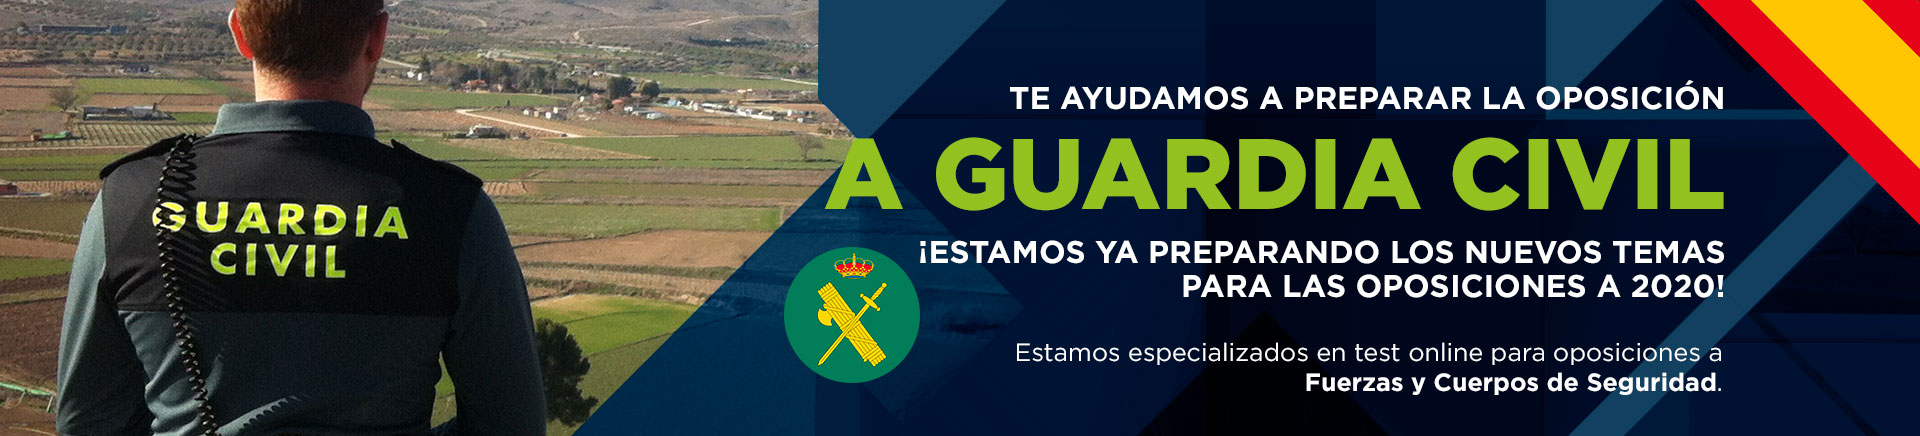 Test Online Justificados para las Oposiciones a Guardia Civil